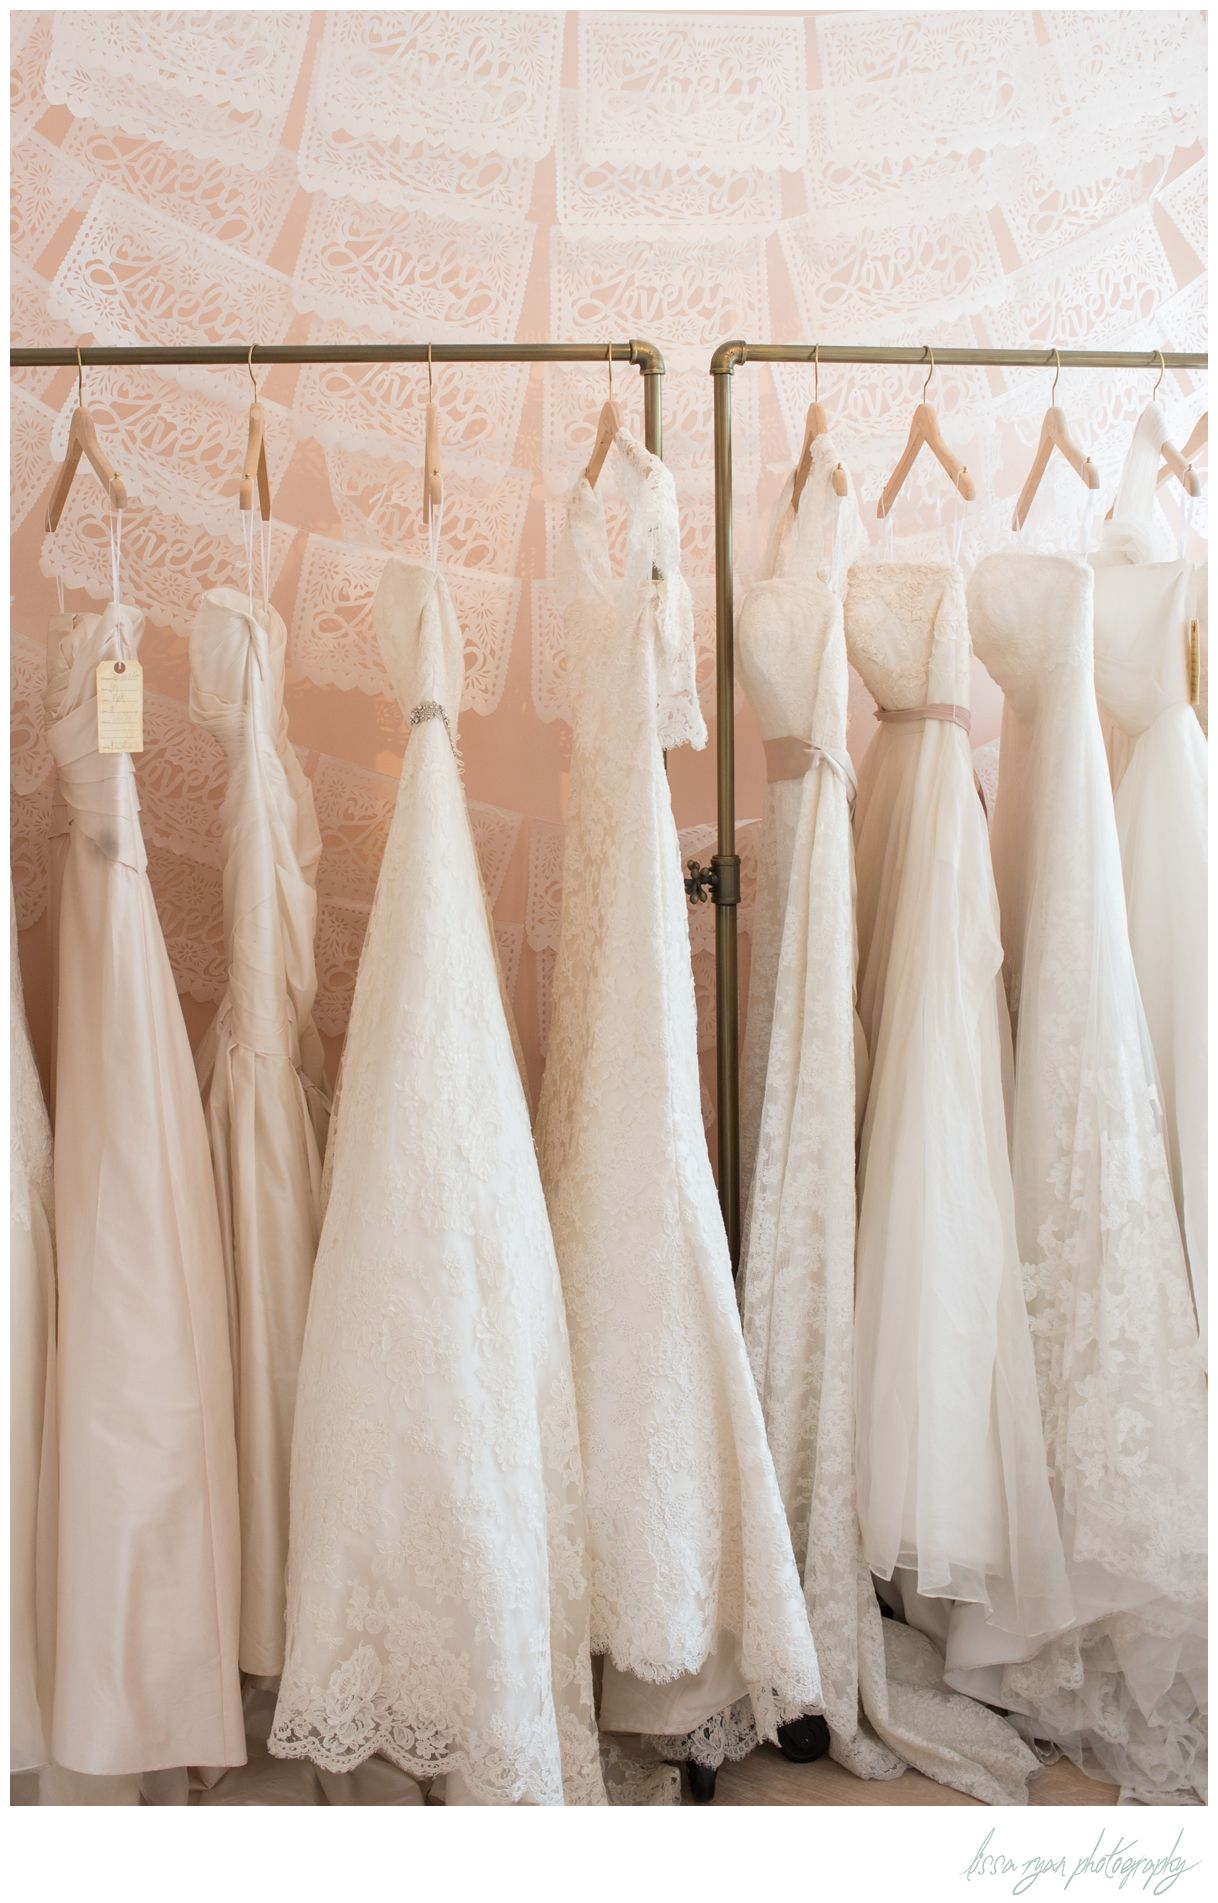 vendor spotlight: lovely bride dc | Washington dc wedding, Dc ...